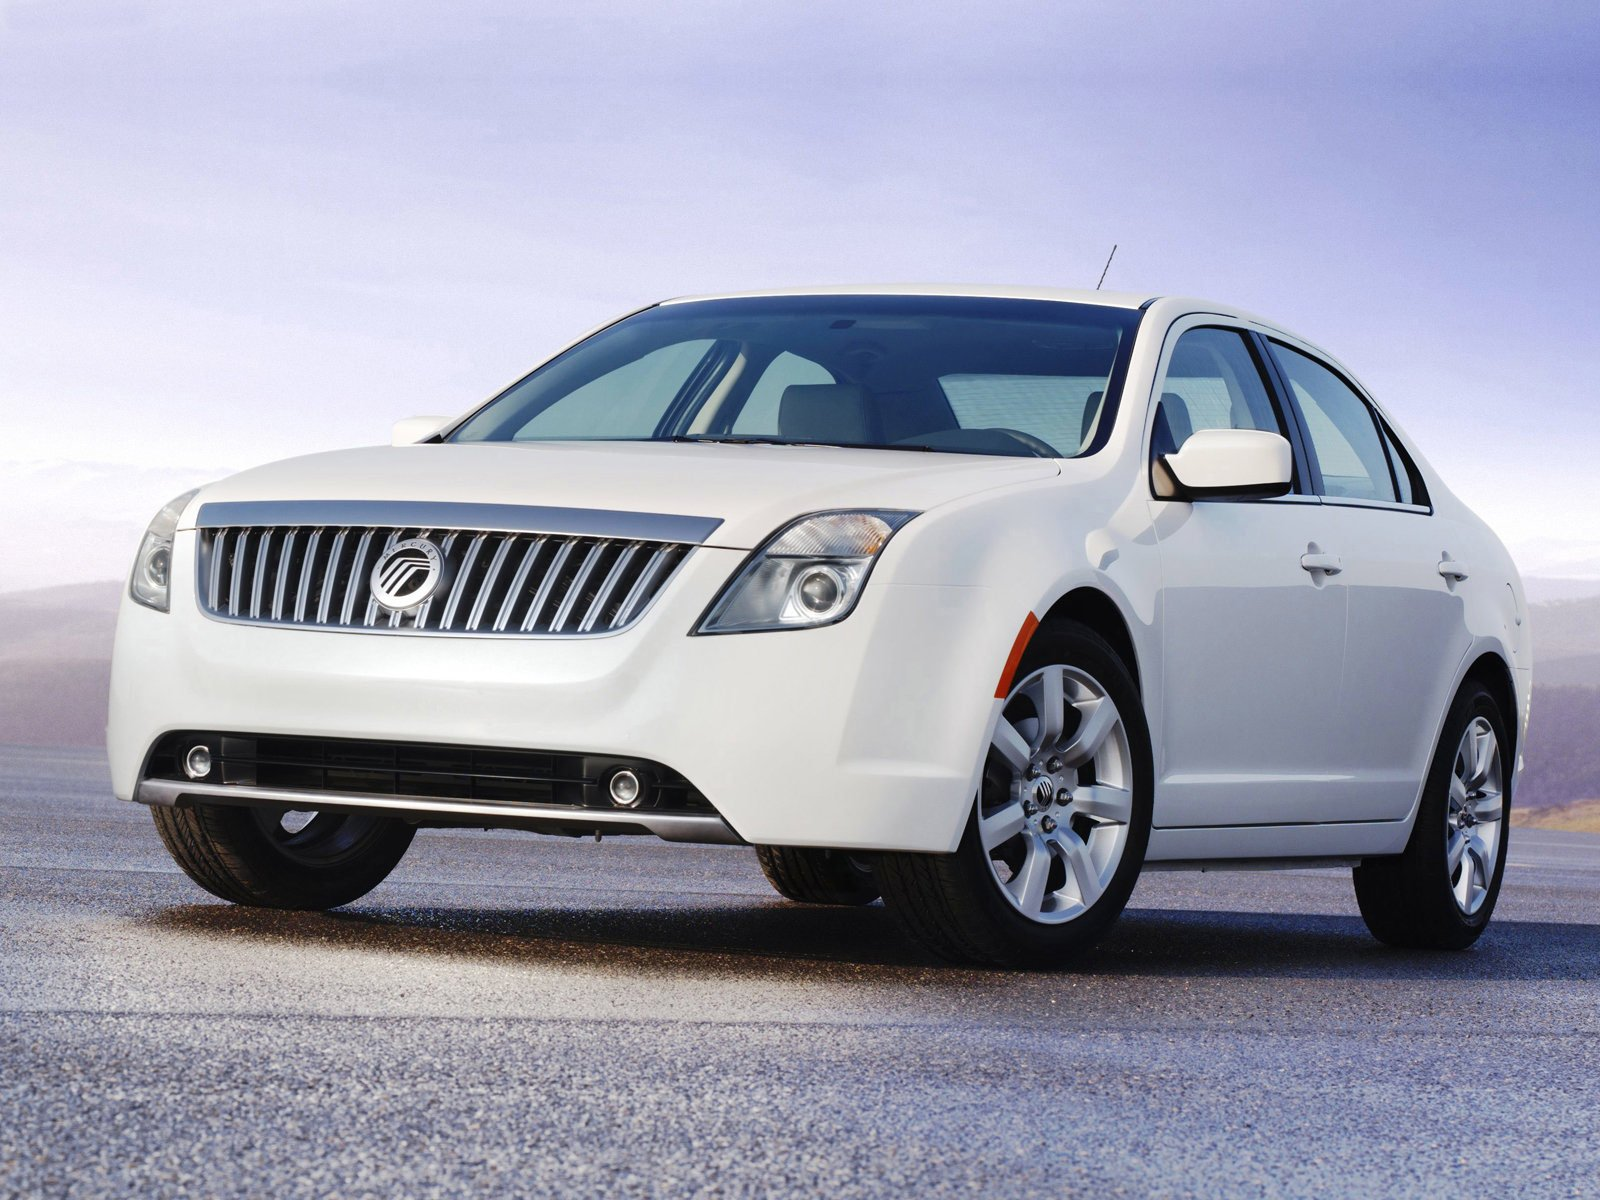 Latest 2010 Mercury Milan Car Accident Lawyers Wallpaper Free Download